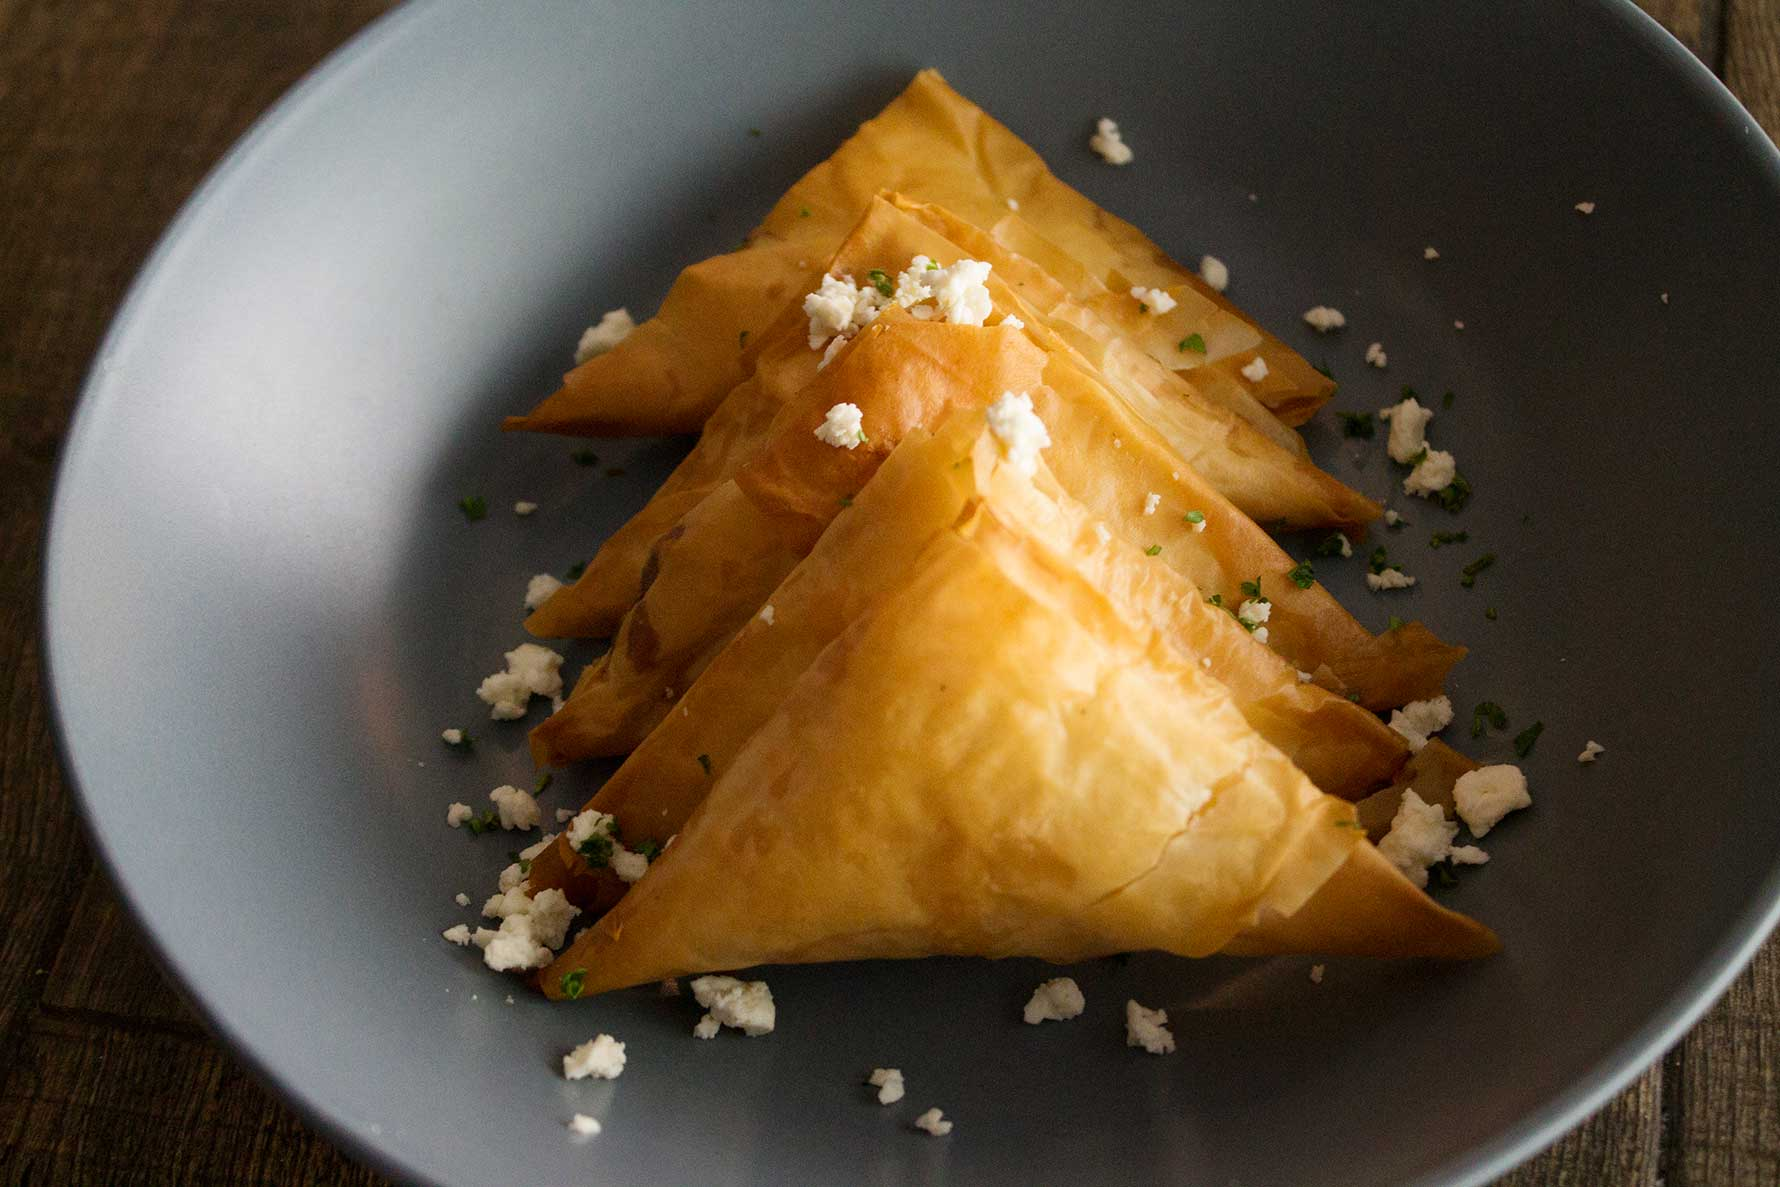 A combination of traditional cheeses encased in phyllo pastry.